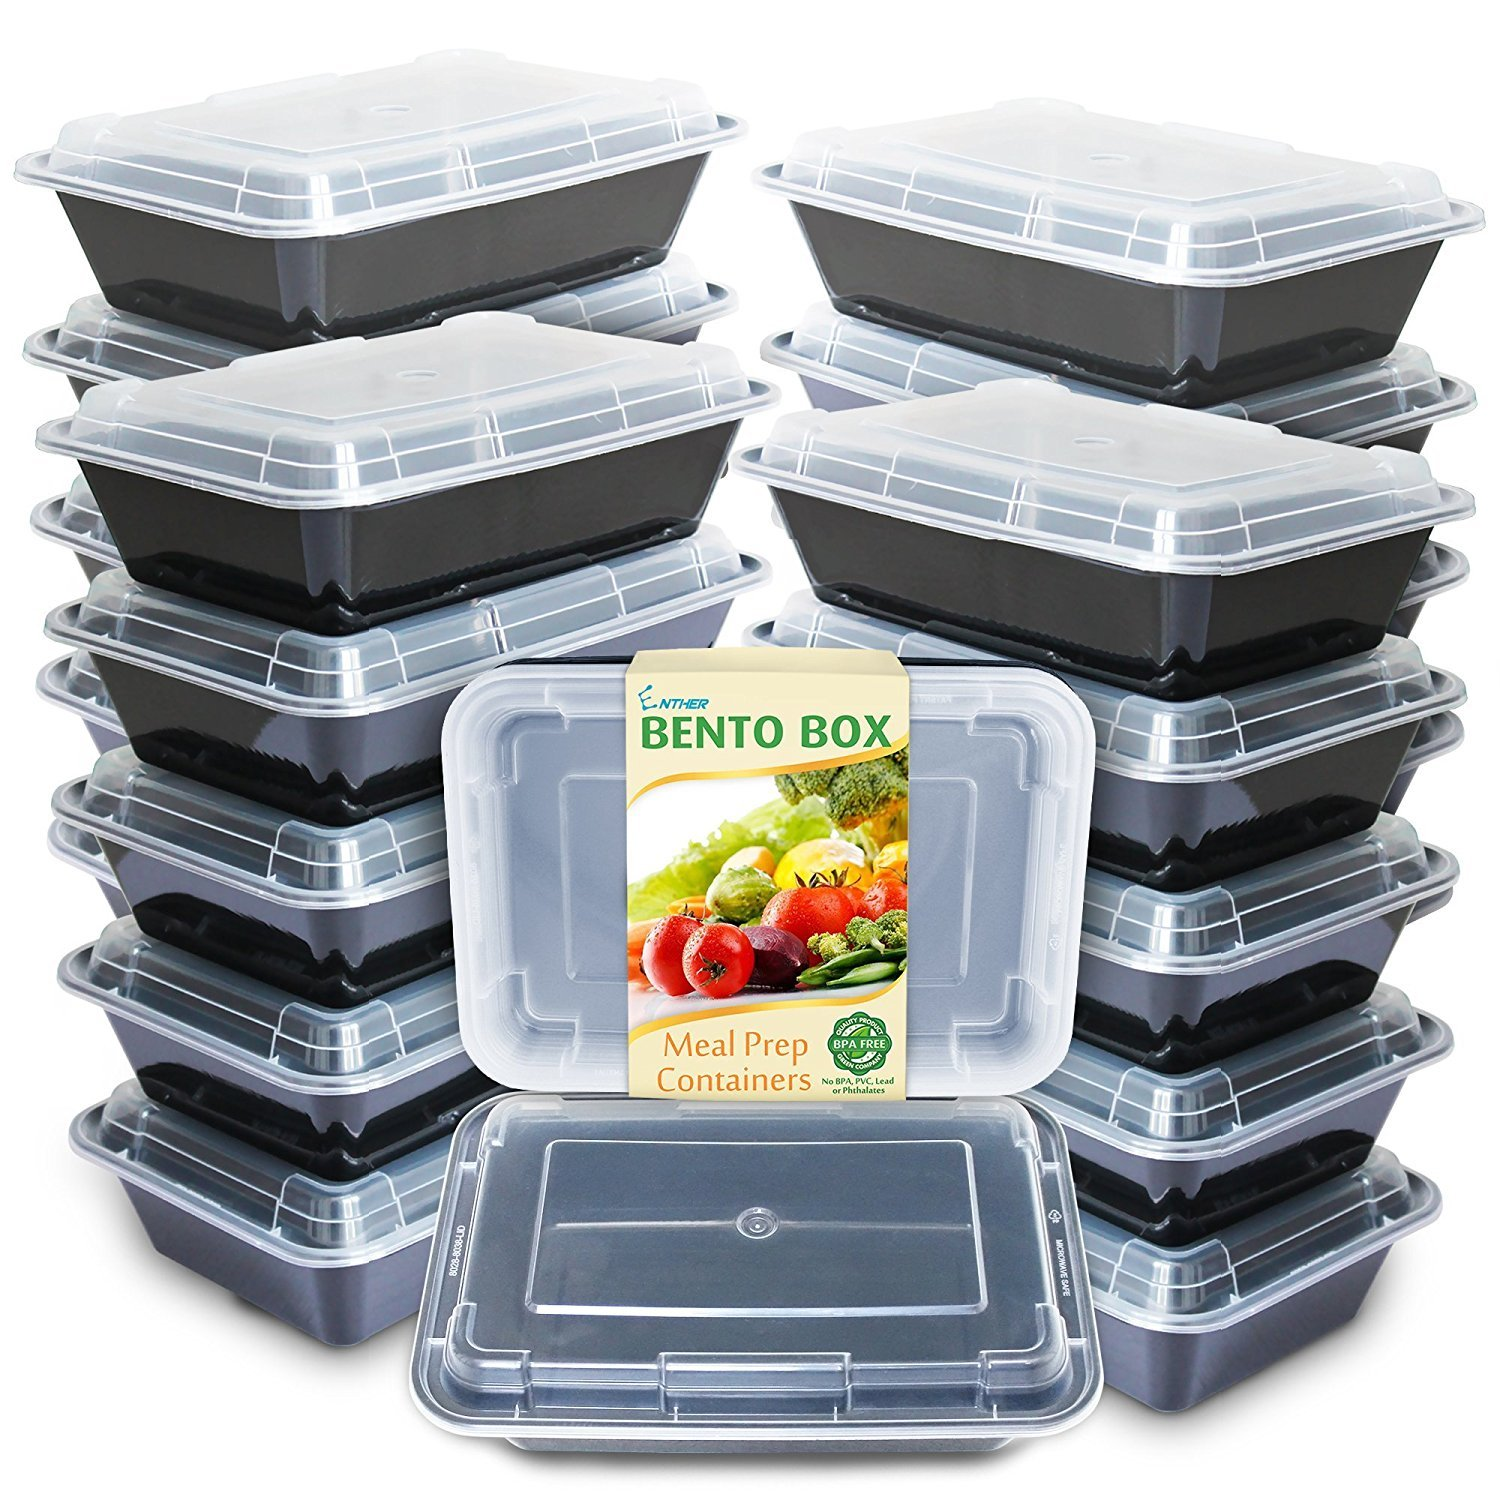 Enther Meal Prep Containers [20 Pack] Single 1 Compartment with Lids, Food Storage Bento Box | BPA Free | Stackable | Reusable Lunch Boxes, Microwave/Dishwasher/Freezer Safe,Portion Control (28 oz) by Enther